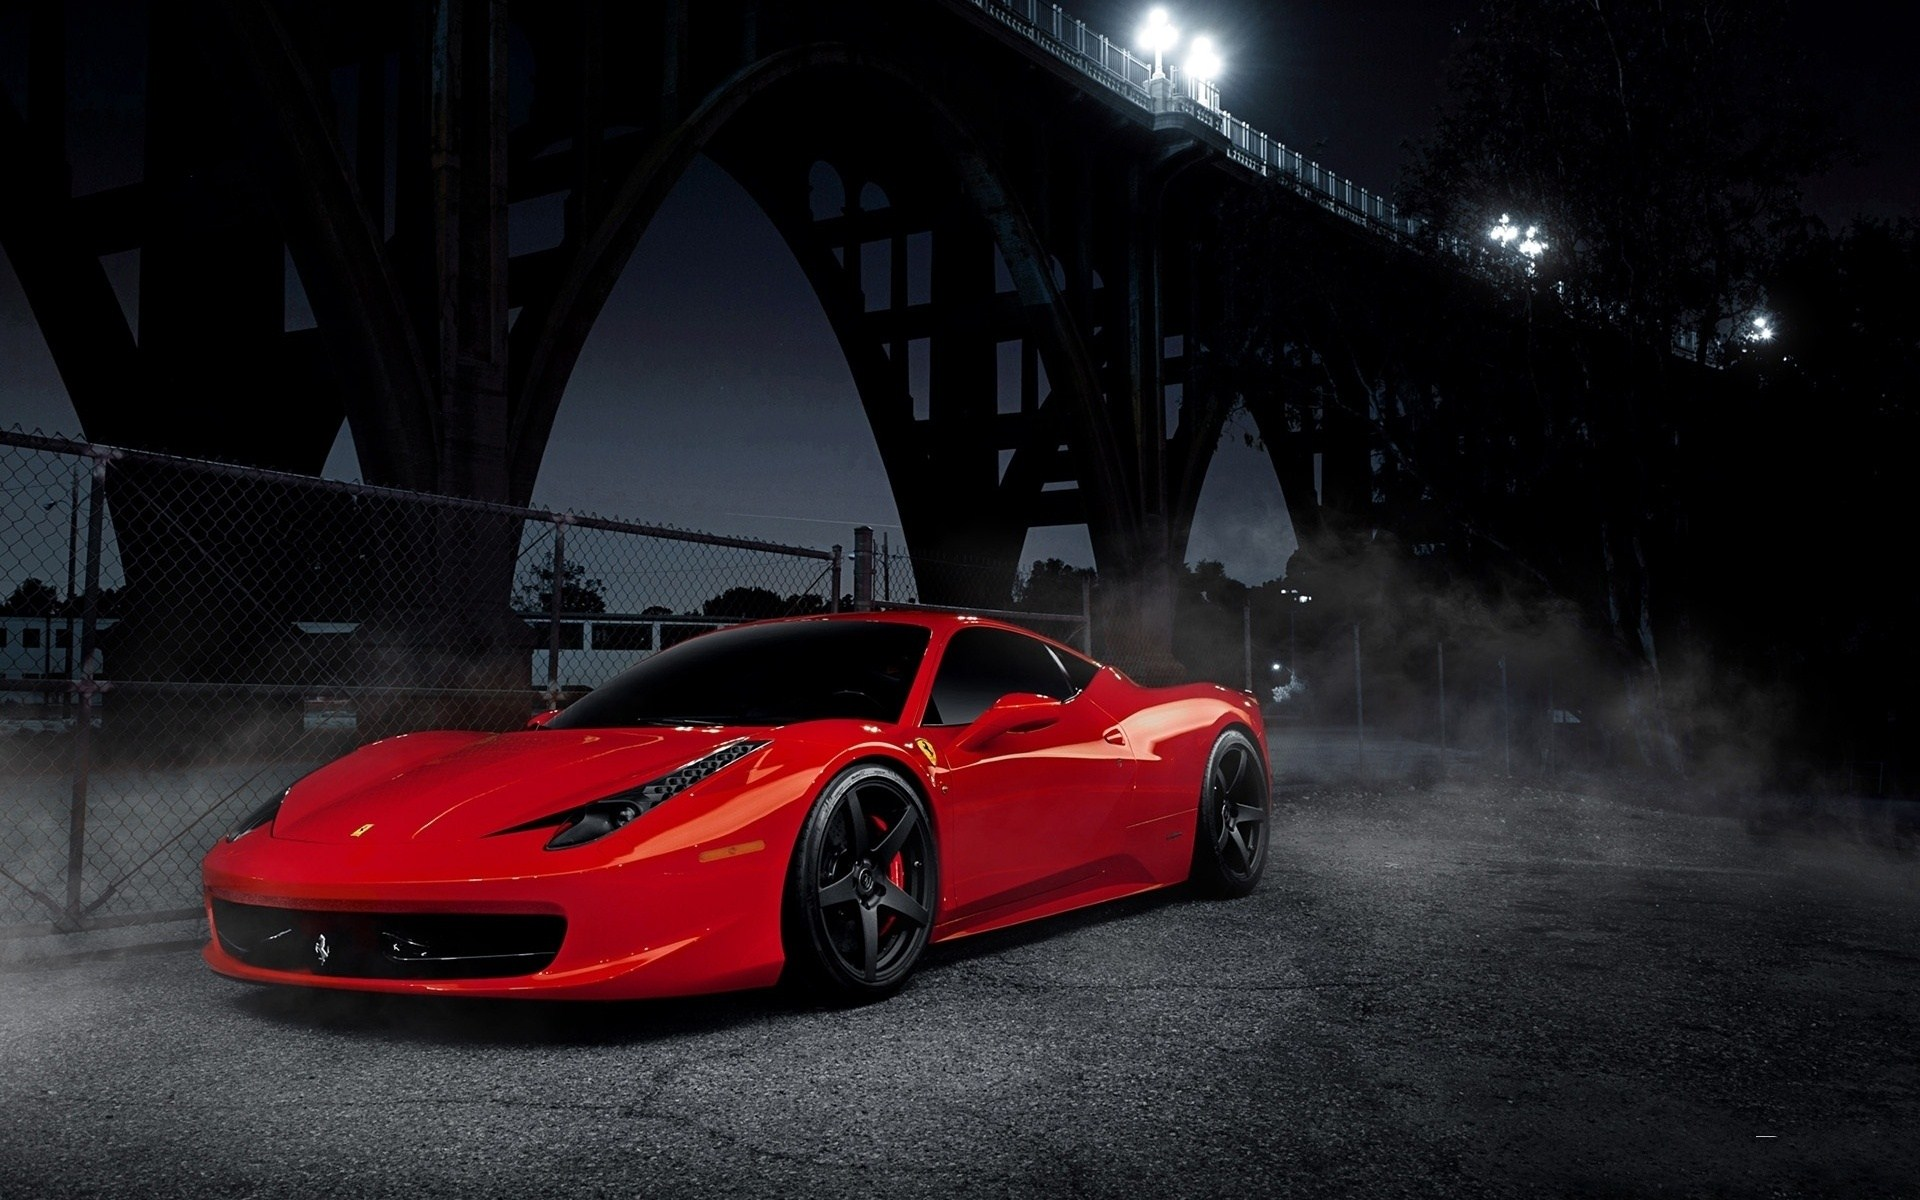 Cute Love Image Wallpaper Ferrari 458 Italia Wallpapers Archives Page 6 Of 6 Hd